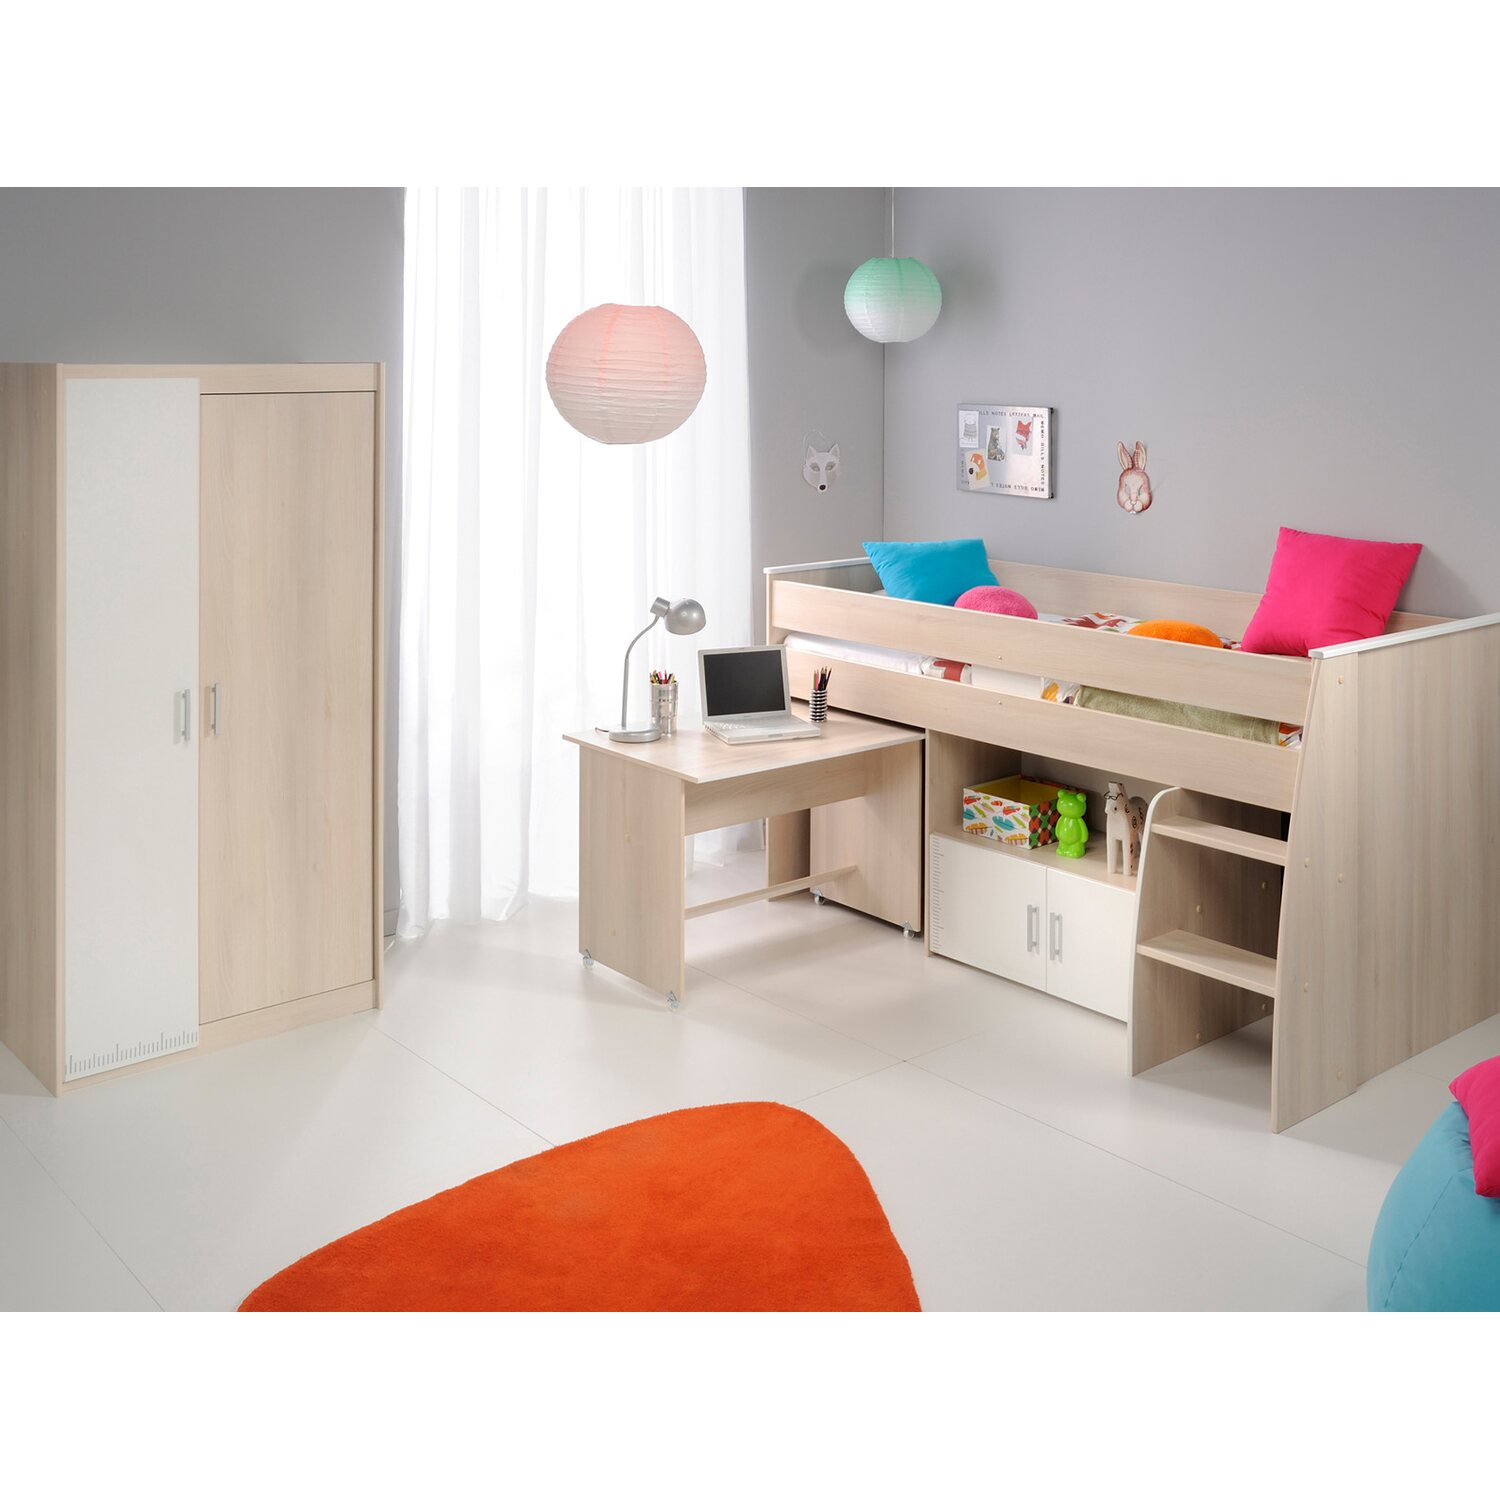 parisot kinderzimmer set 2 teilig charly v akazie wei kaufen bei obi. Black Bedroom Furniture Sets. Home Design Ideas